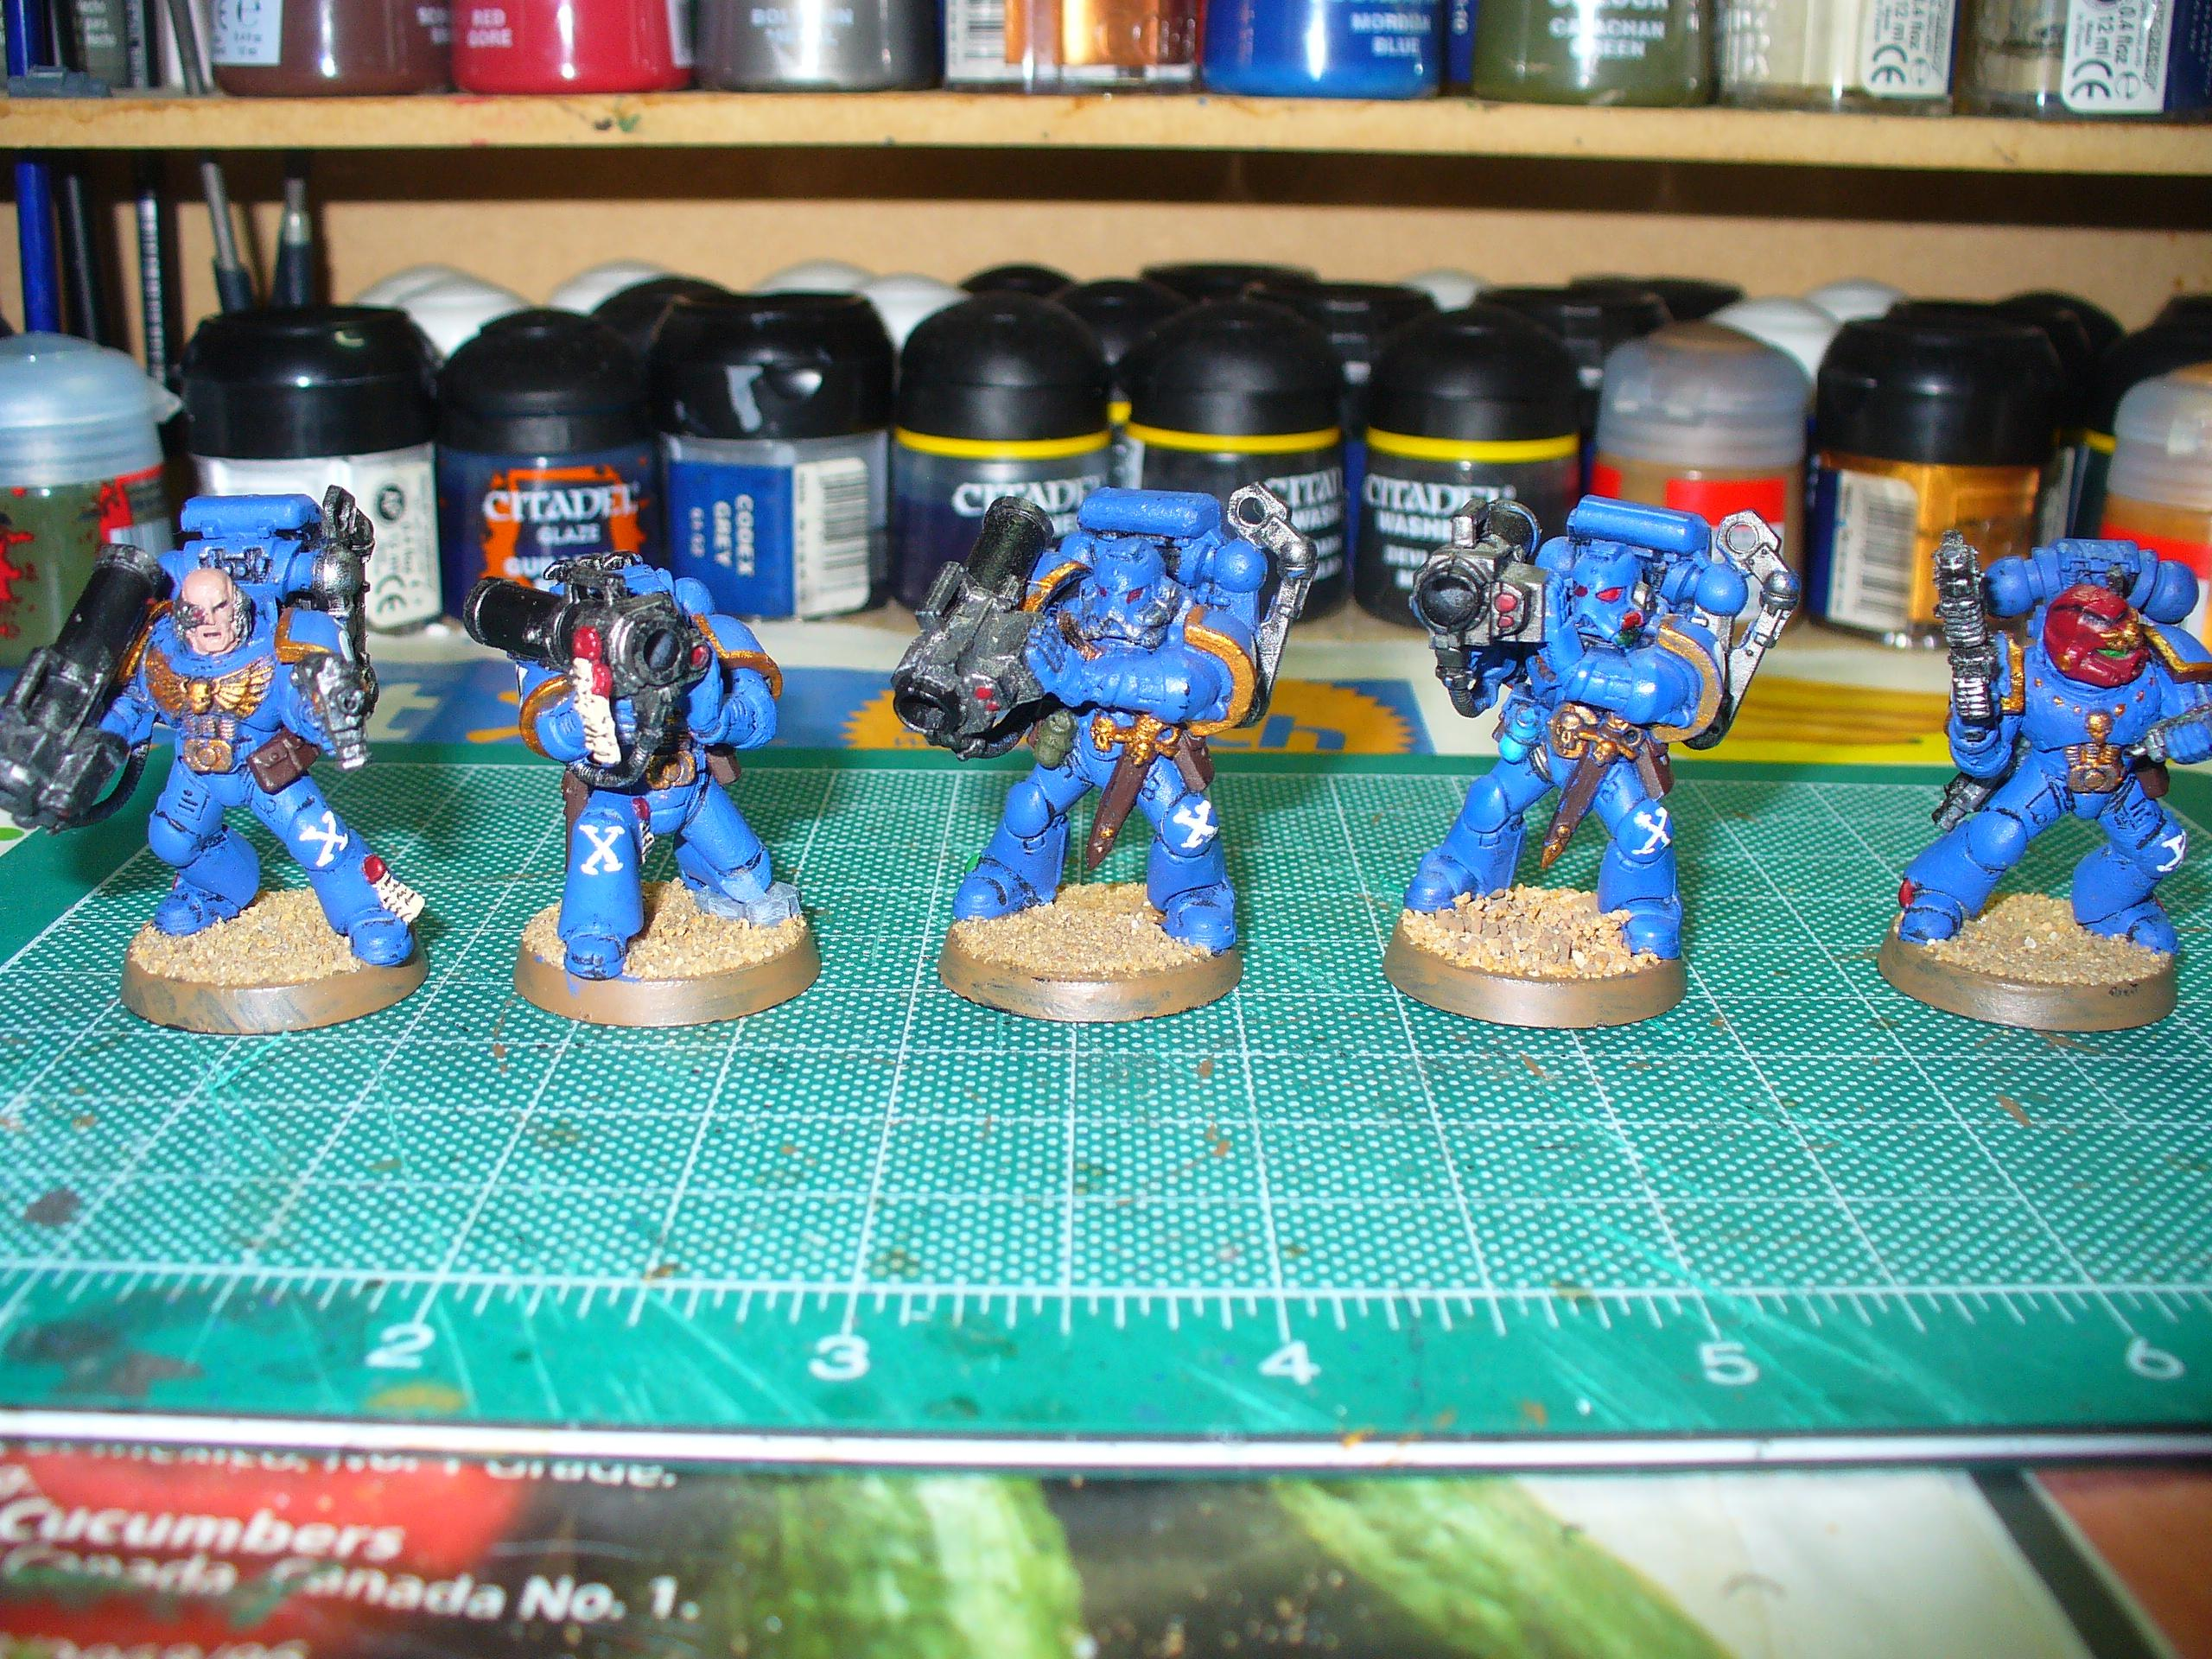 Also, since I am not redoing the decals, I painted a squad attachment marking to the 10th squad (Devastator) on the knees of the whole squad, not bad for trying it free hand